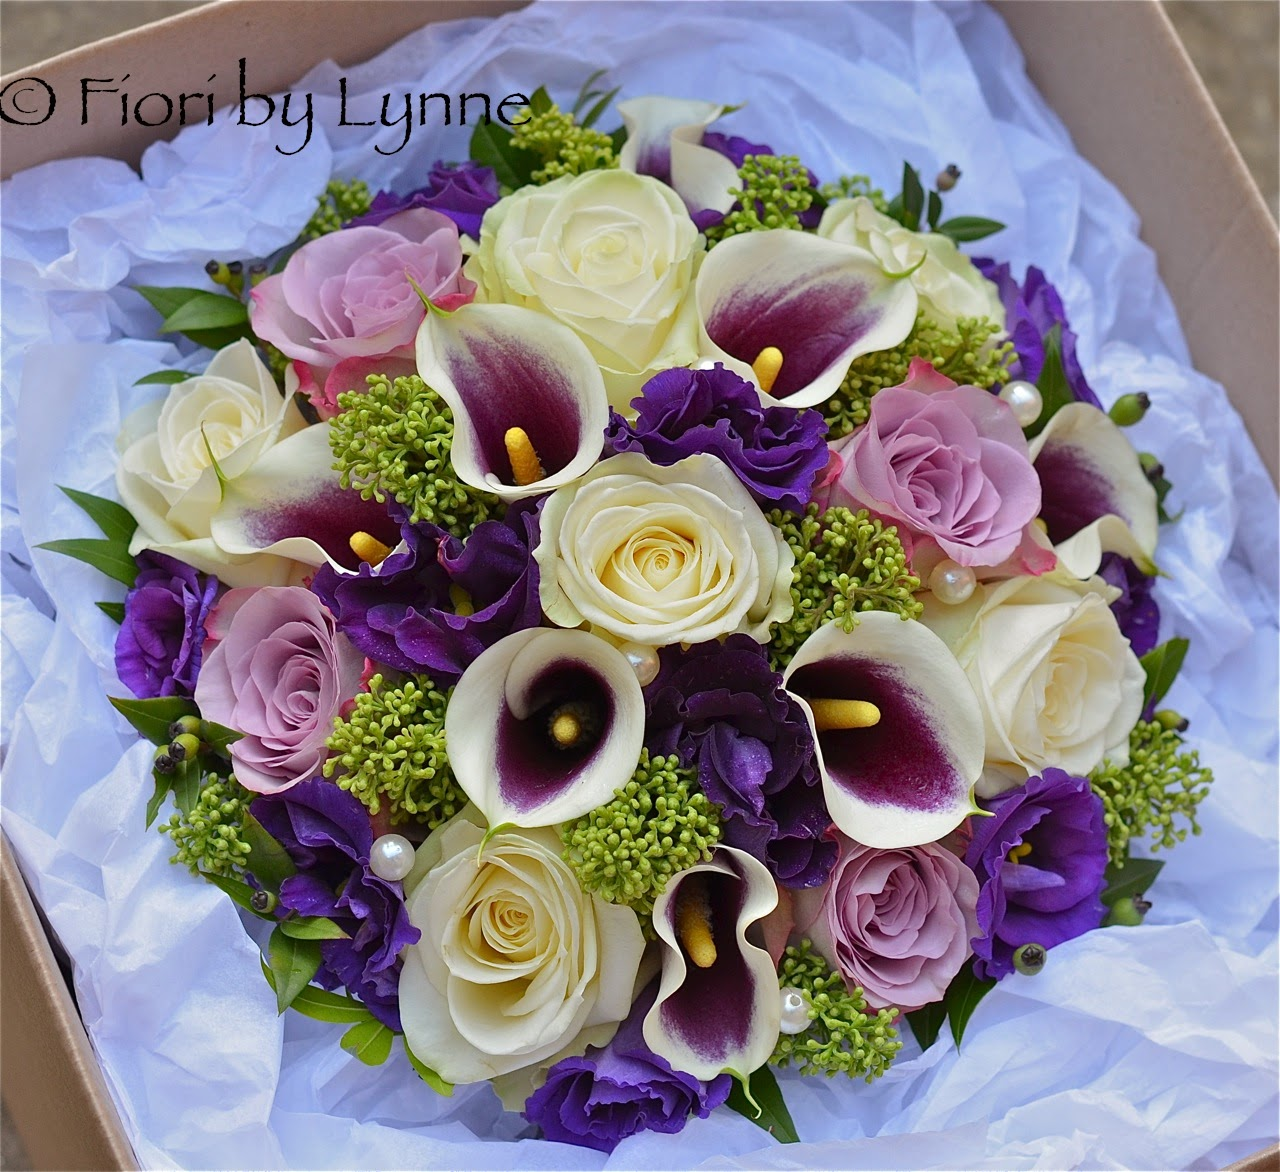 Wedding flowers blog andreas autumn purple ivory green wedding andreas autumn purple ivory green wedding flowers rhinefield house junglespirit Choice Image